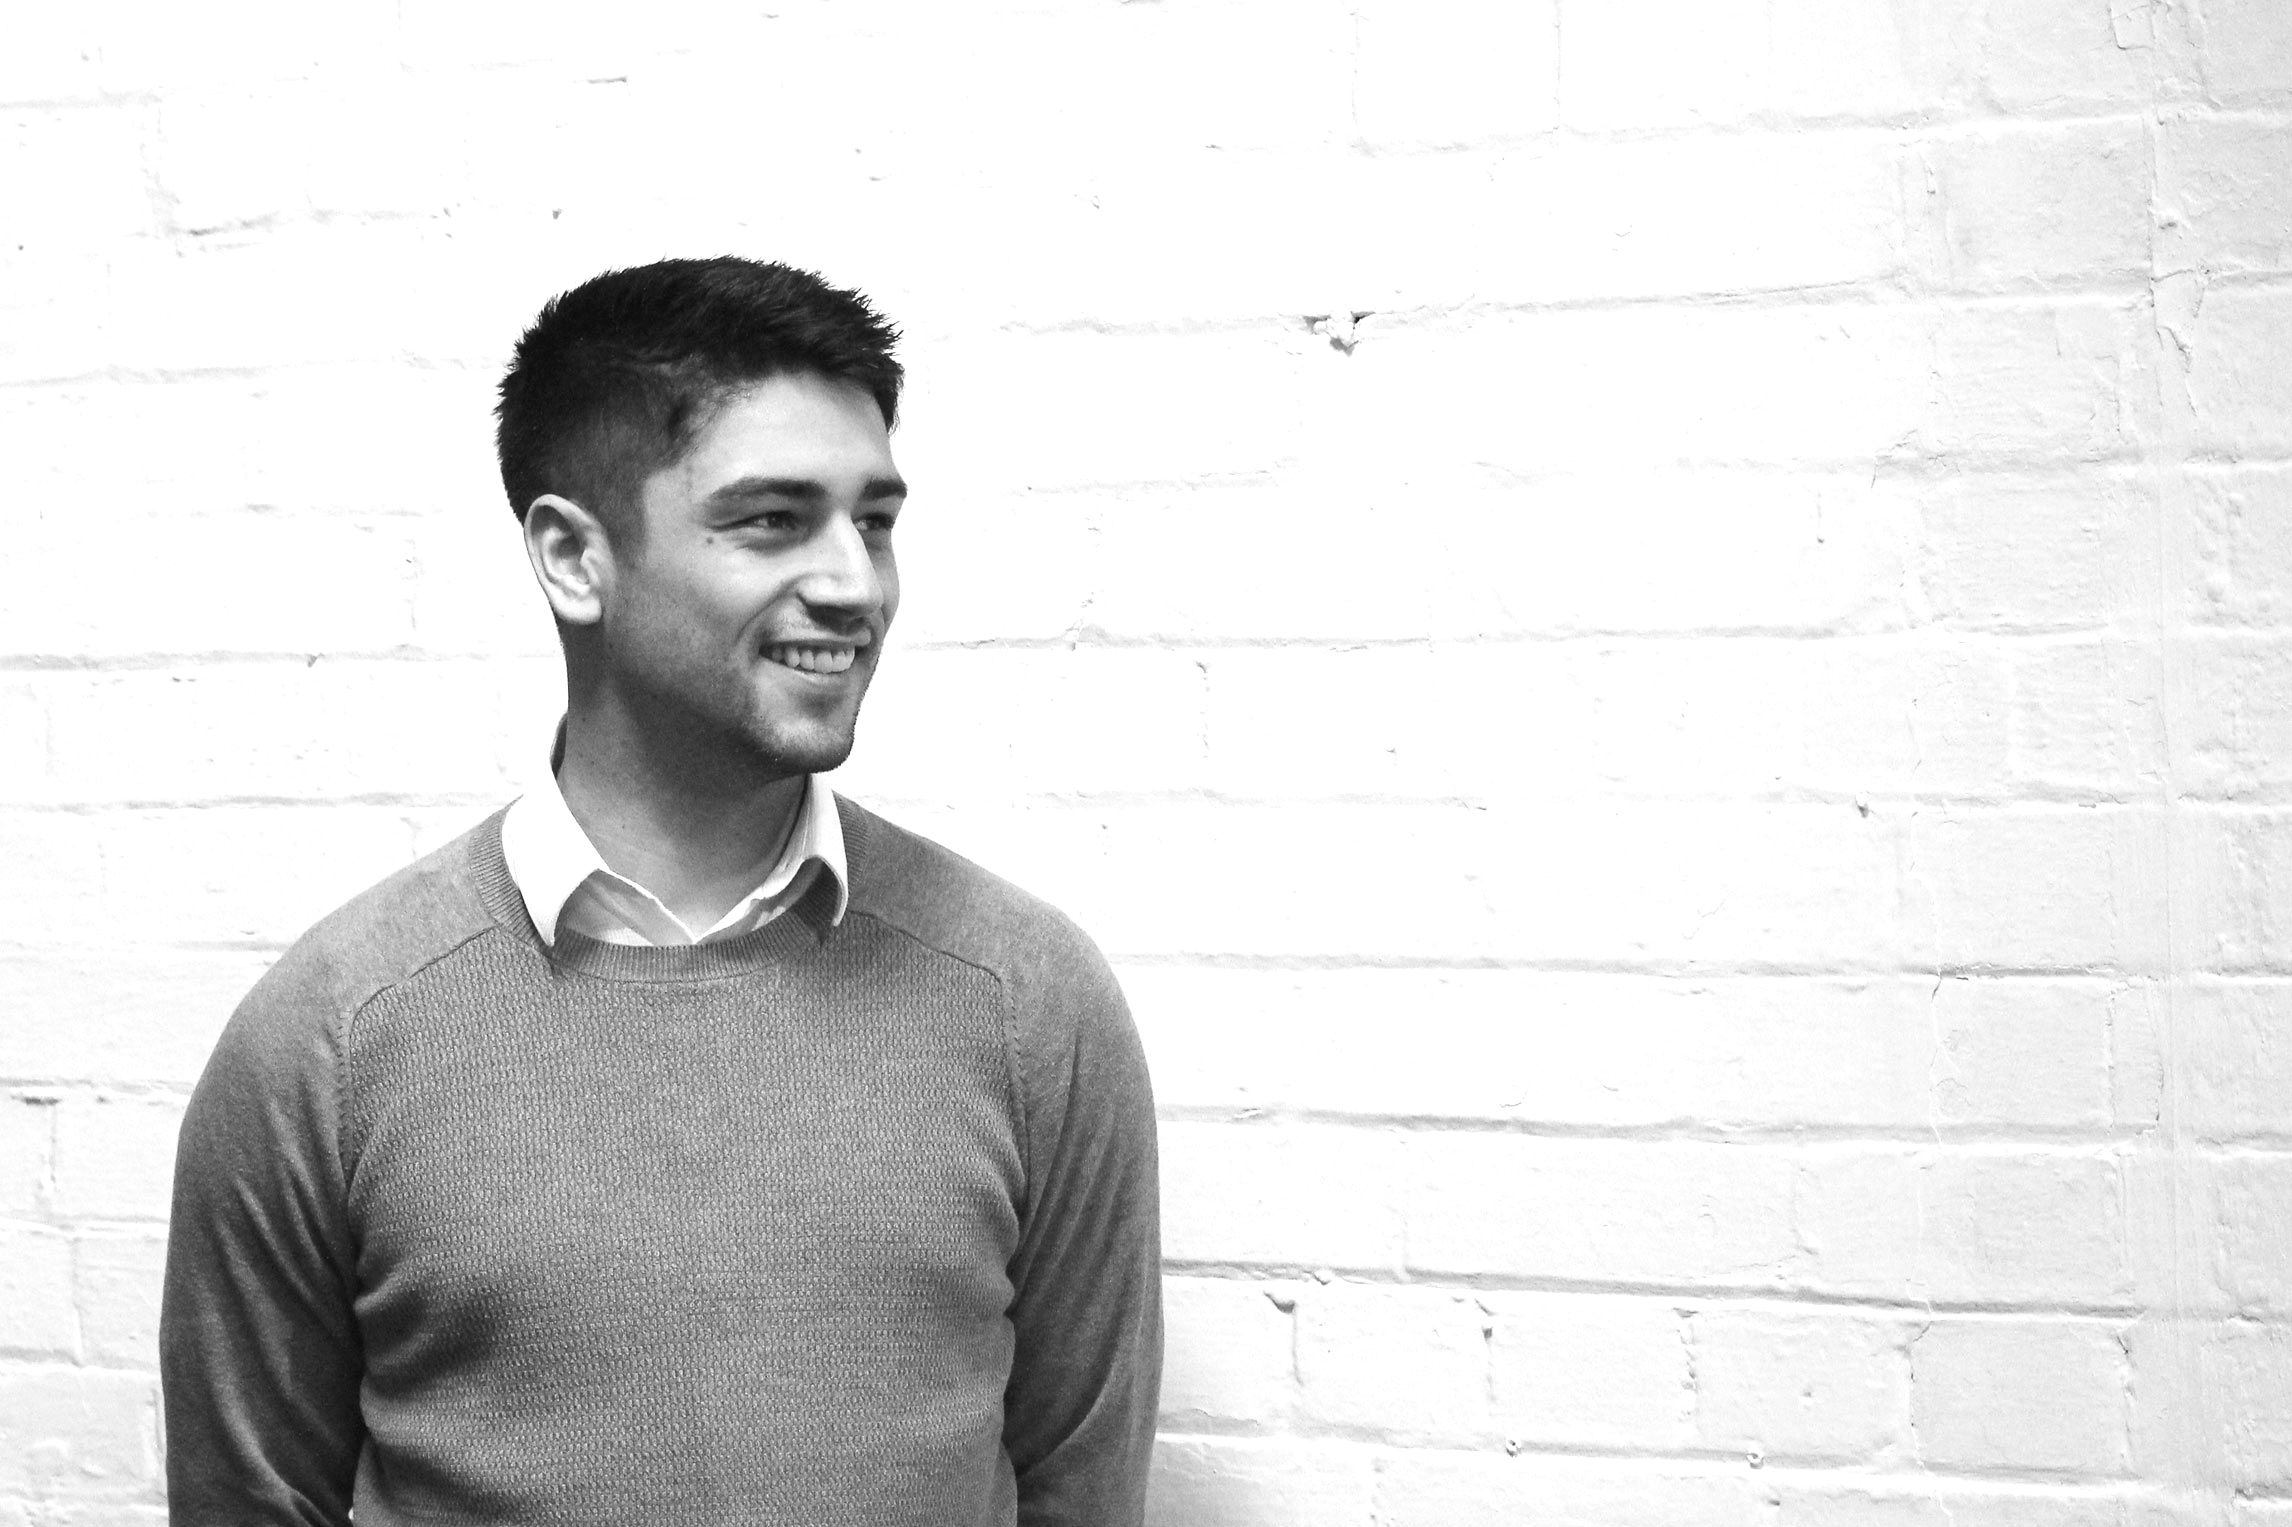 John tehrani - ARCHITECTURAL TECHNICIANHaving worked in the retail sector working with nationwide clients John has joined PARKdesigned to provide additional expertise to our technical team. He will also help to manage and delivery our residential and commercial projects.